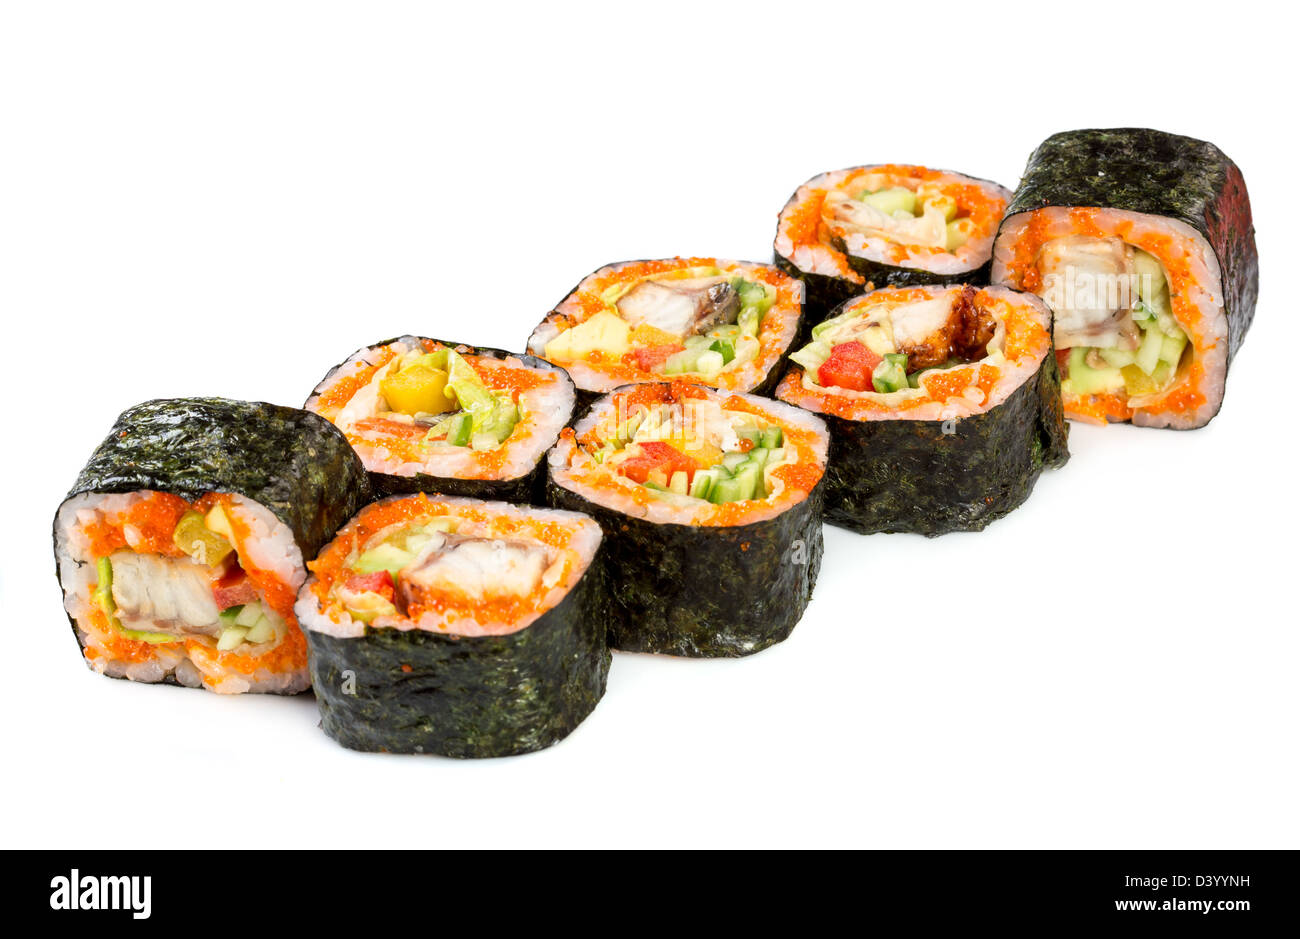 Tasty food. Sushi Roll on a white background - Stock Image